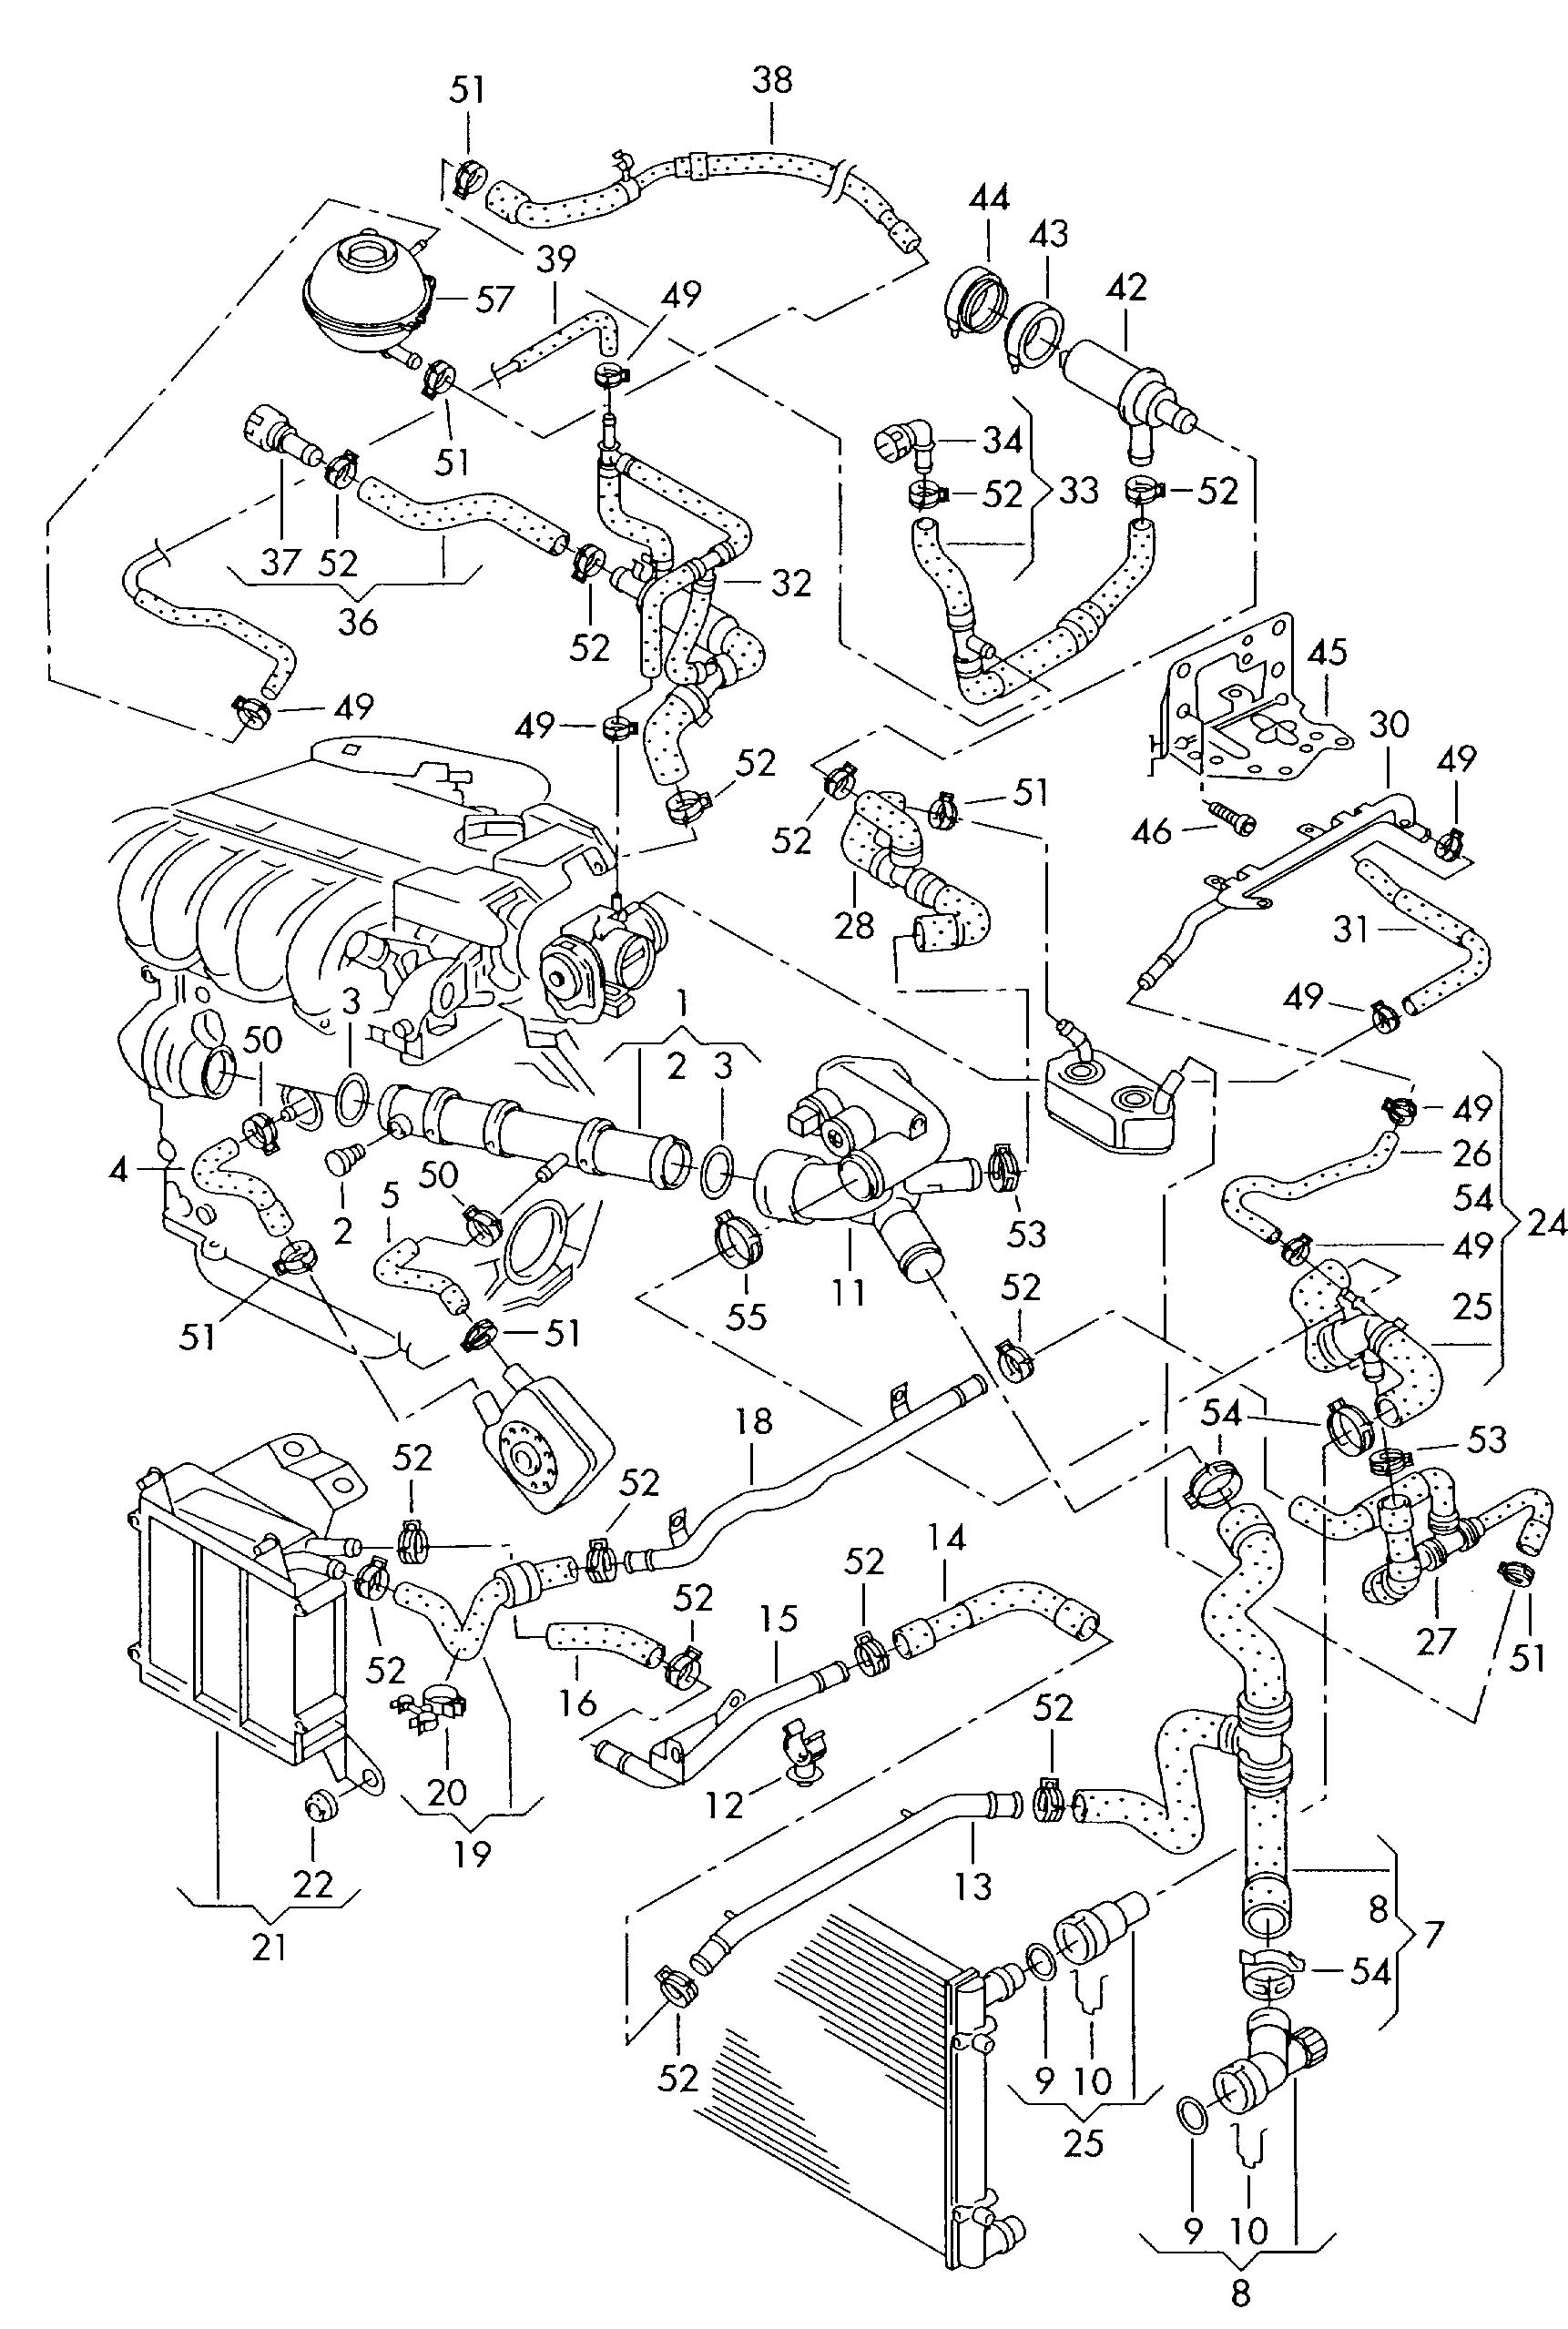 mk3 golf vr6 wiring diagram fetal pig digestive system labeled vwvortex another coolant leak what could this be from